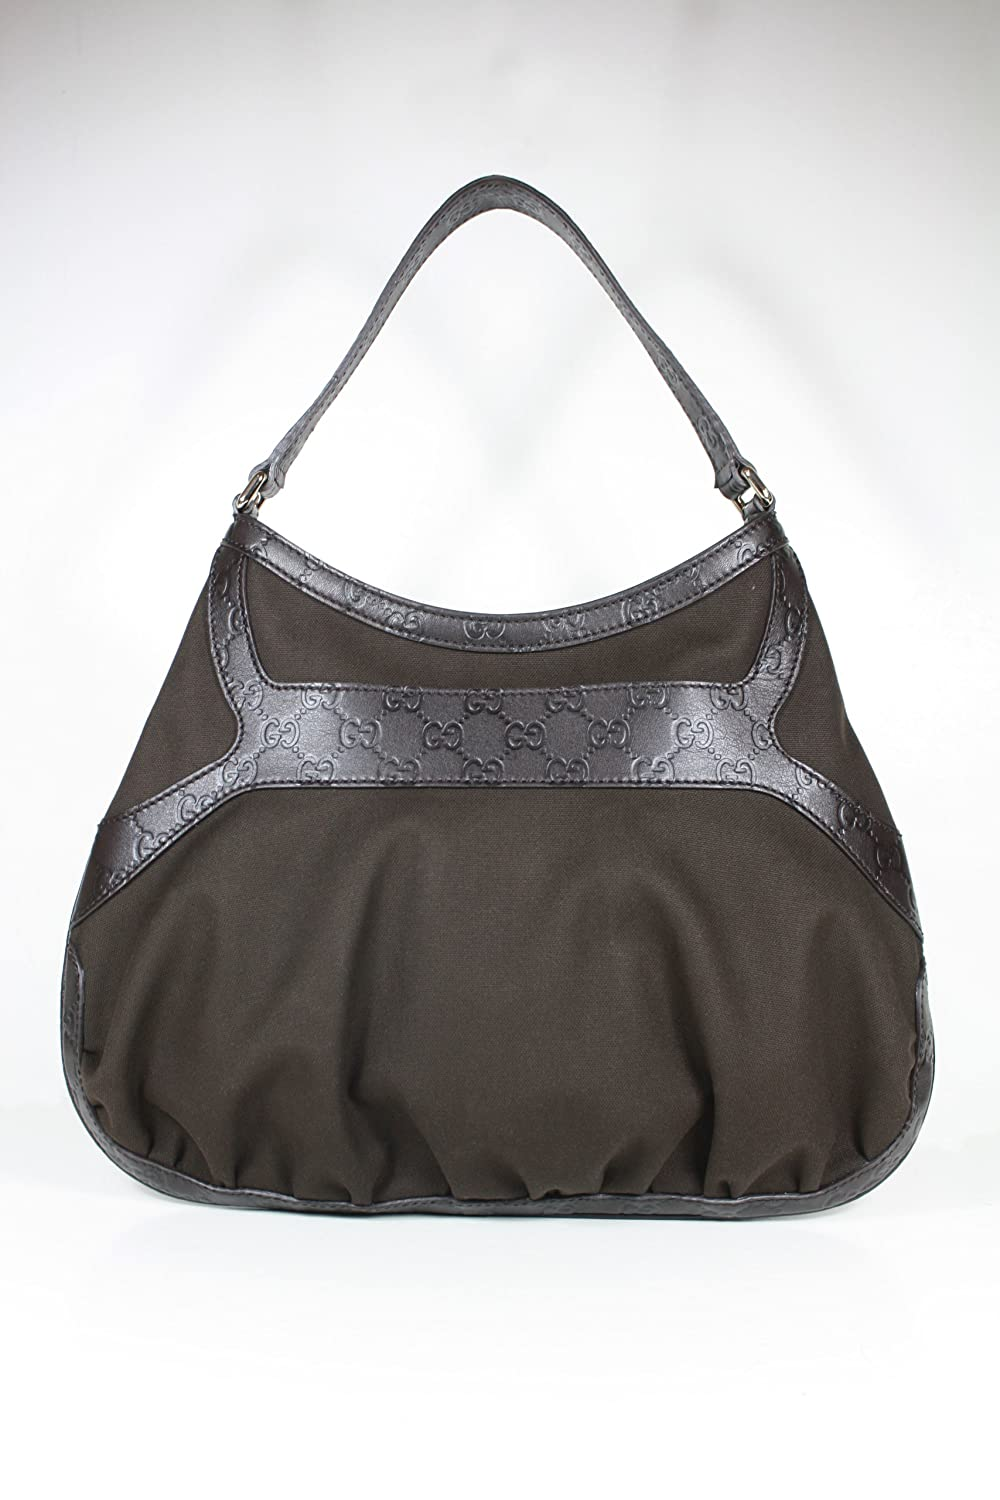 1037bd4665ea07 Amazon.com: Gucci Handbags Brown Fabric and Leather 279158 Purse (CLEARANCE):  Shoes